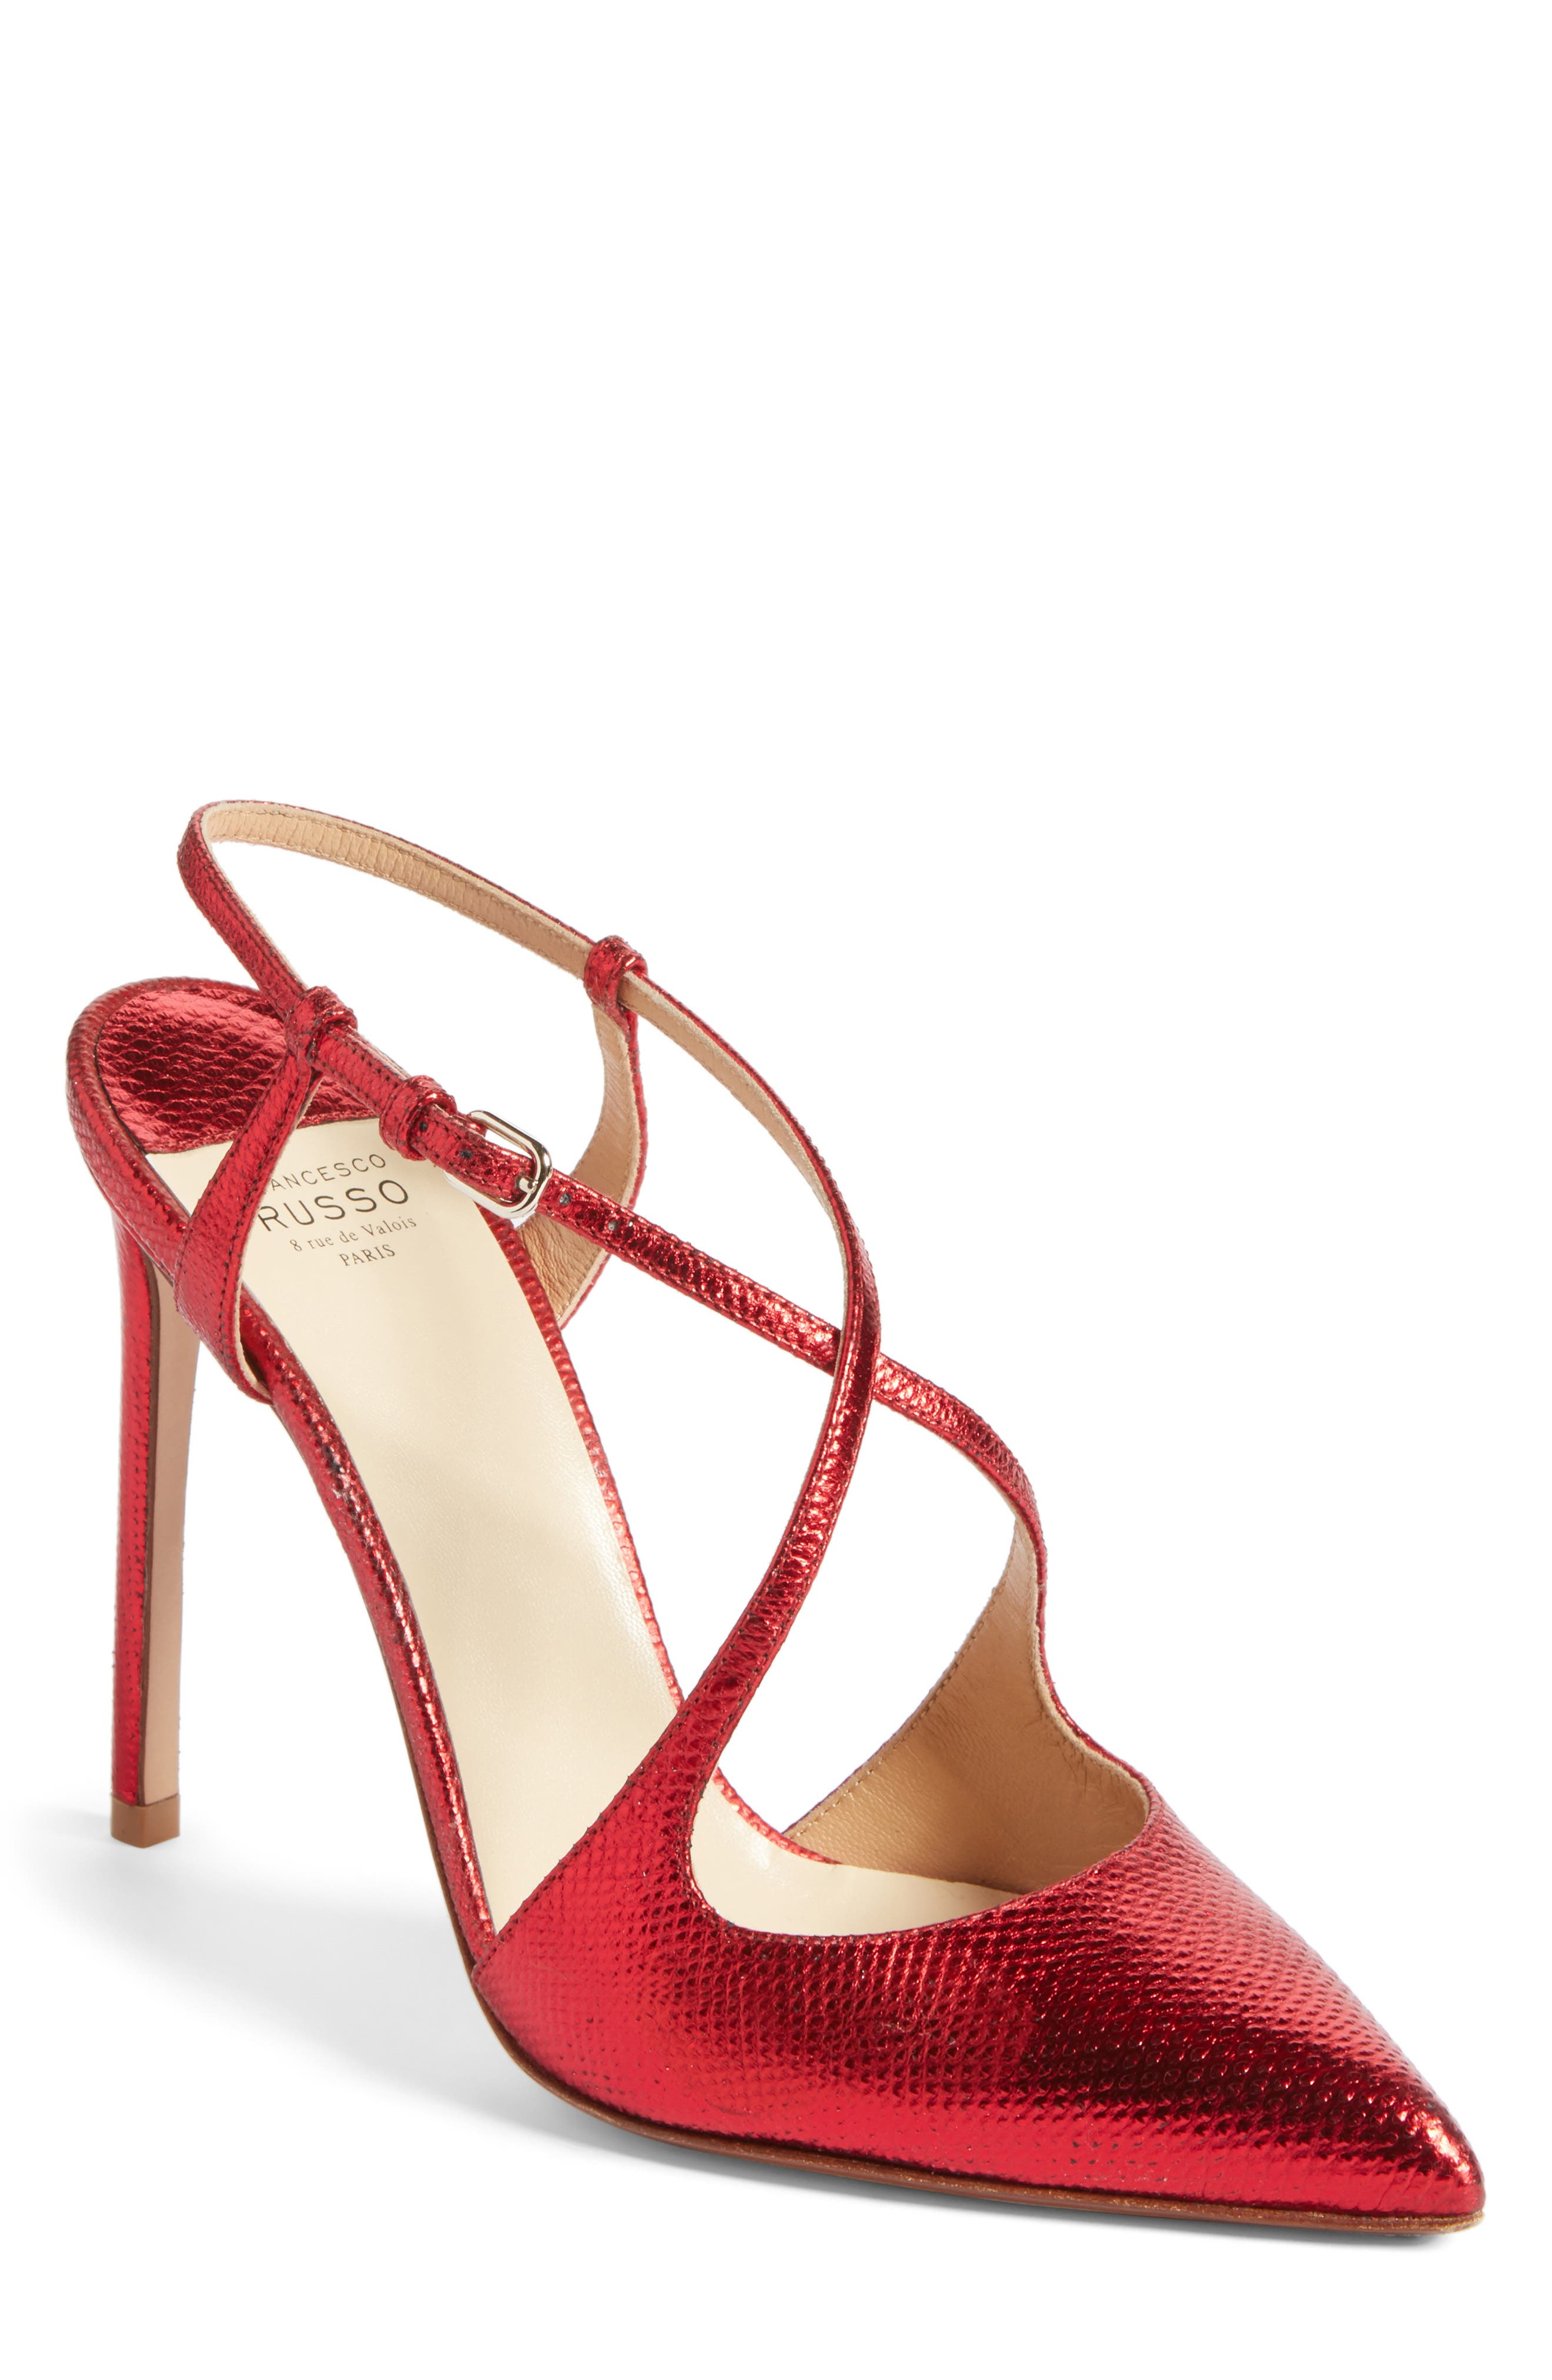 Main Image - Francesco Russo Criss Cross Genuine Snakeskin Pump (Women)